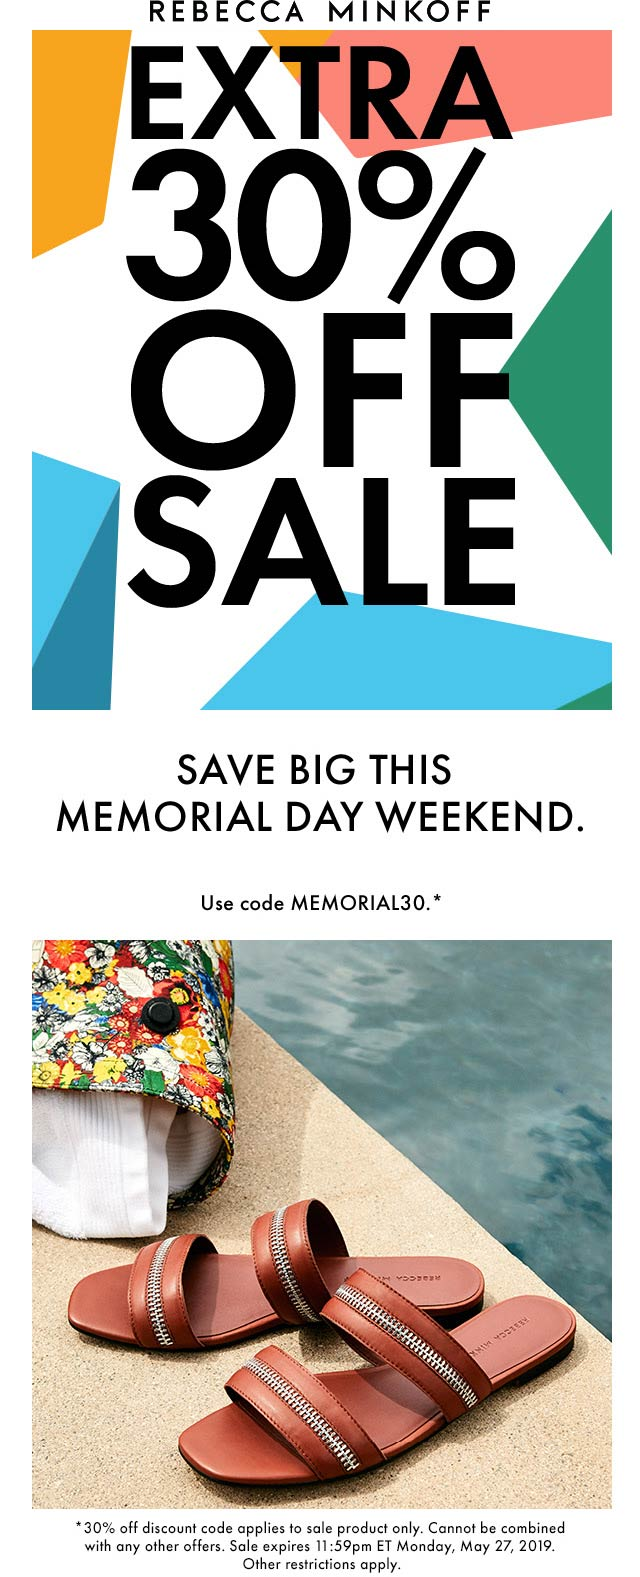 Rebecca Minkoff Coupon January 2020 Extra 30% off sale items at Rebecca Minkoff, or online via promo code MEMORIAL30